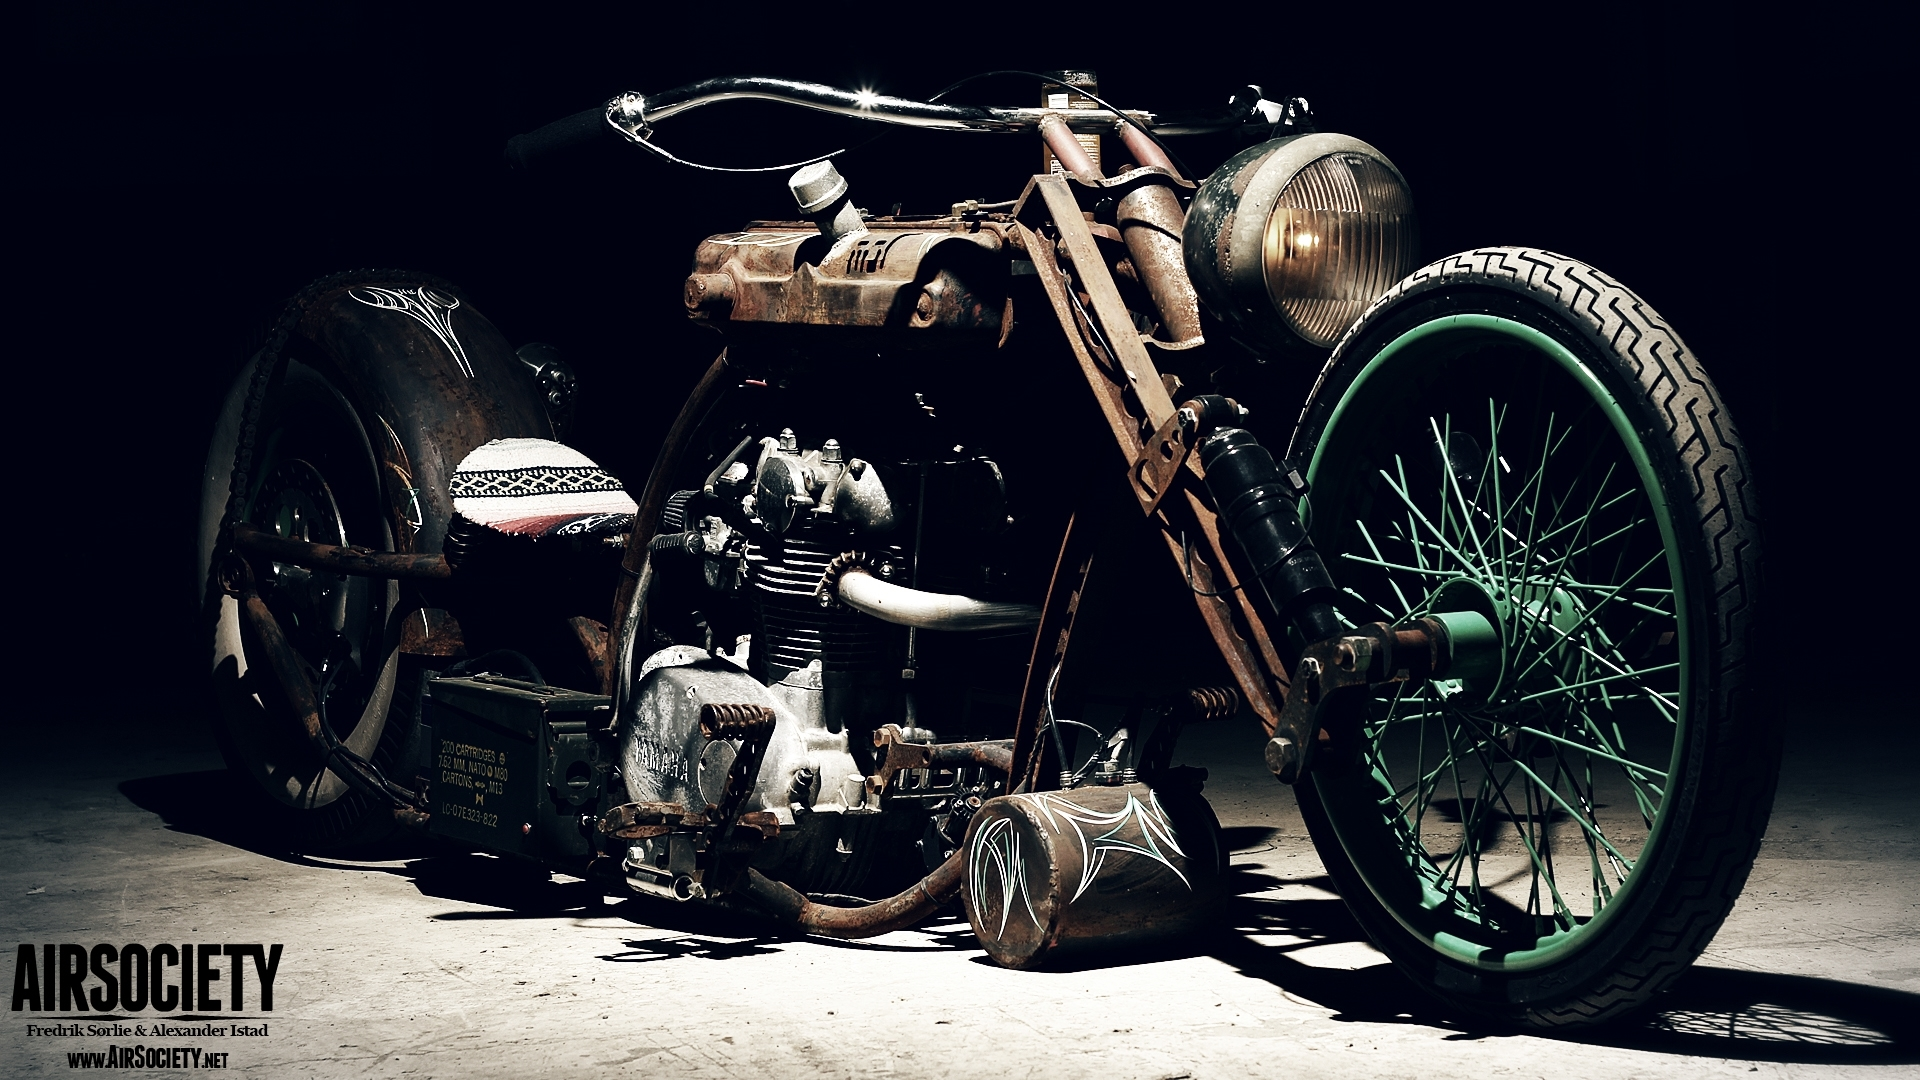 bobber motorcycle background